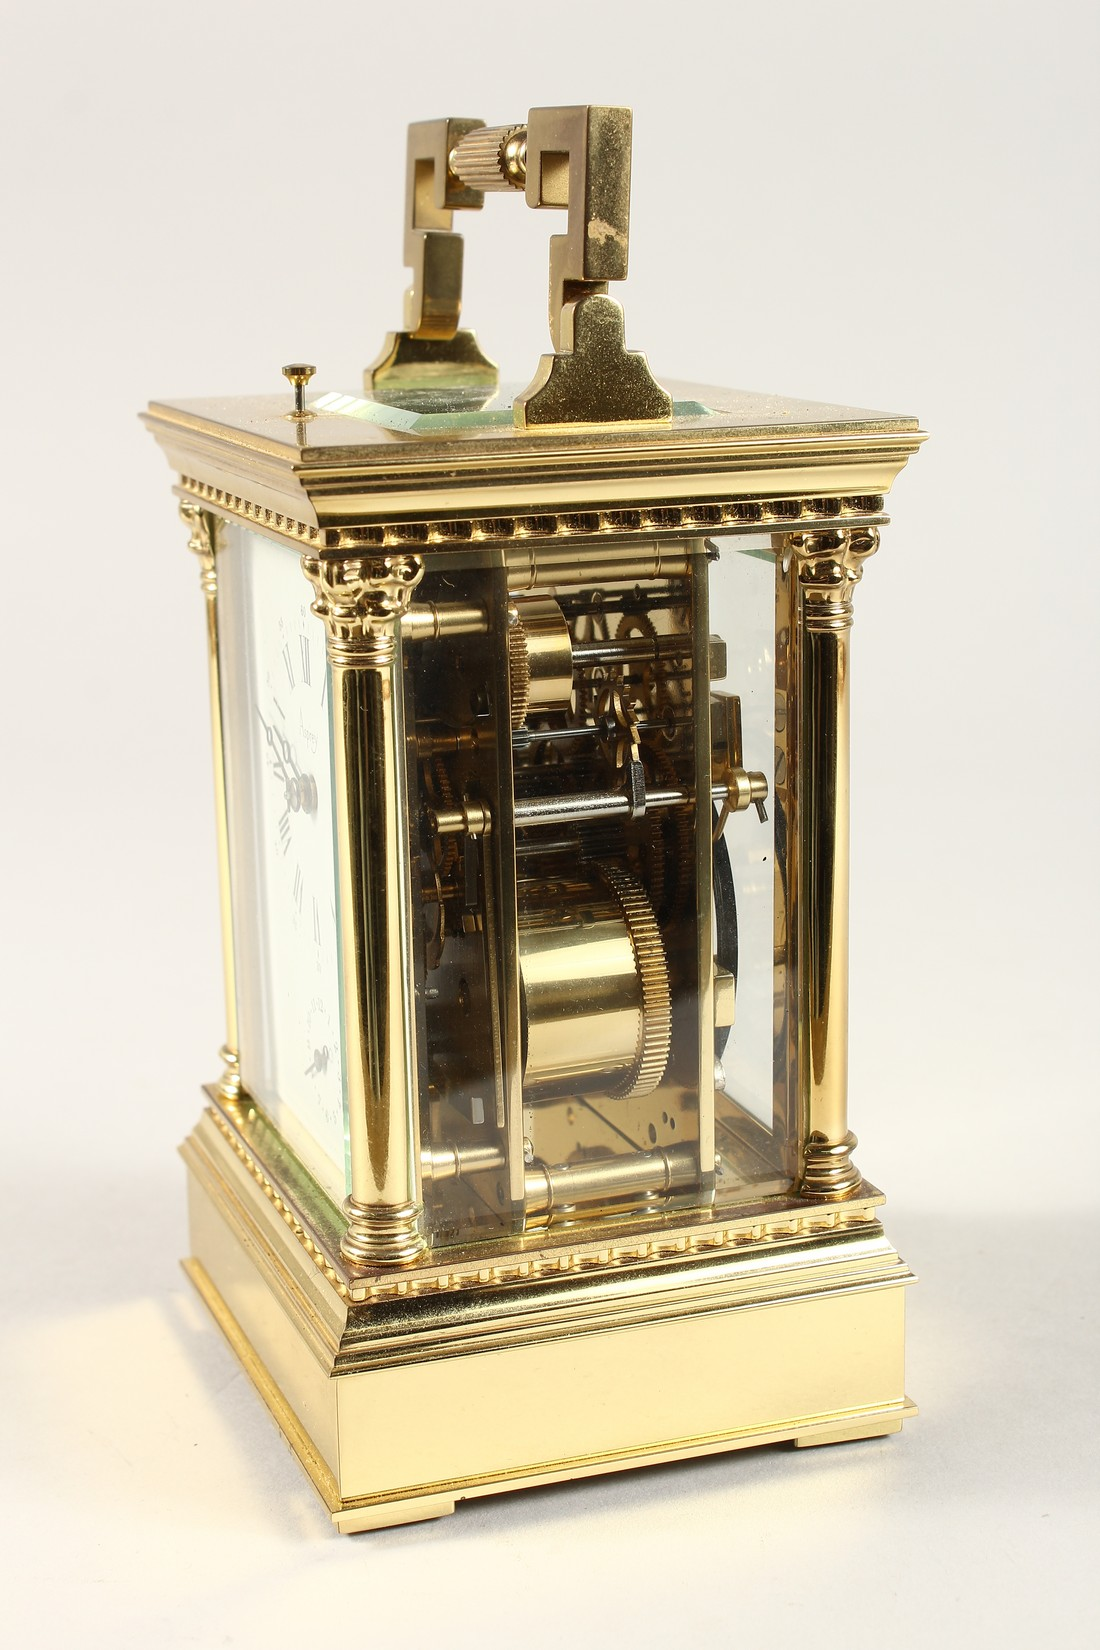 A GOOD ASPREYS BRASS CARRIAGE CLOCK with alarm. 6ins high. - Image 2 of 7